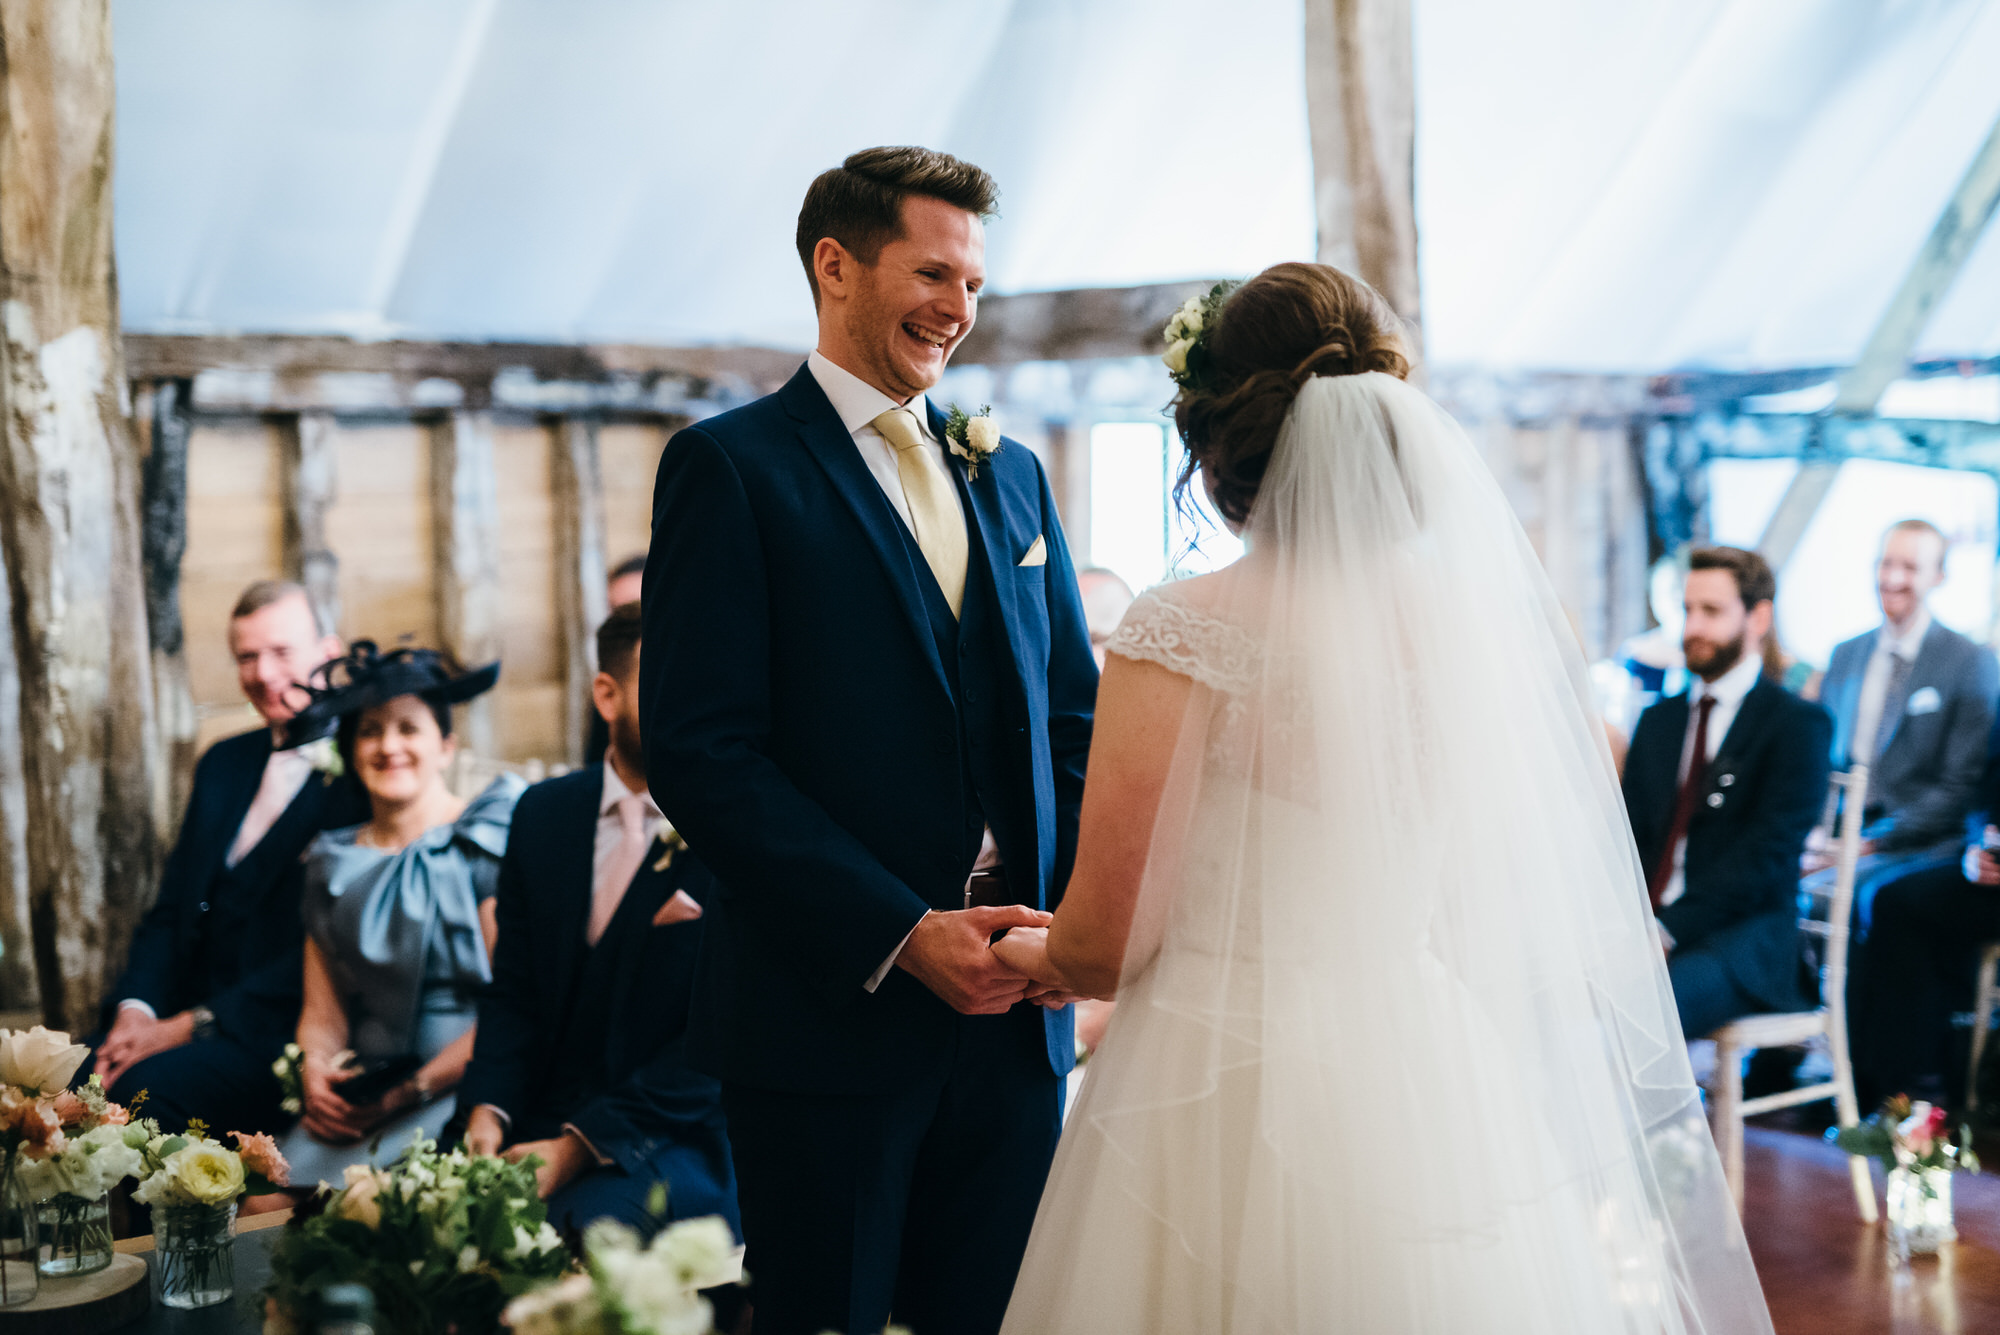 Colville hall wedding ceremony vows